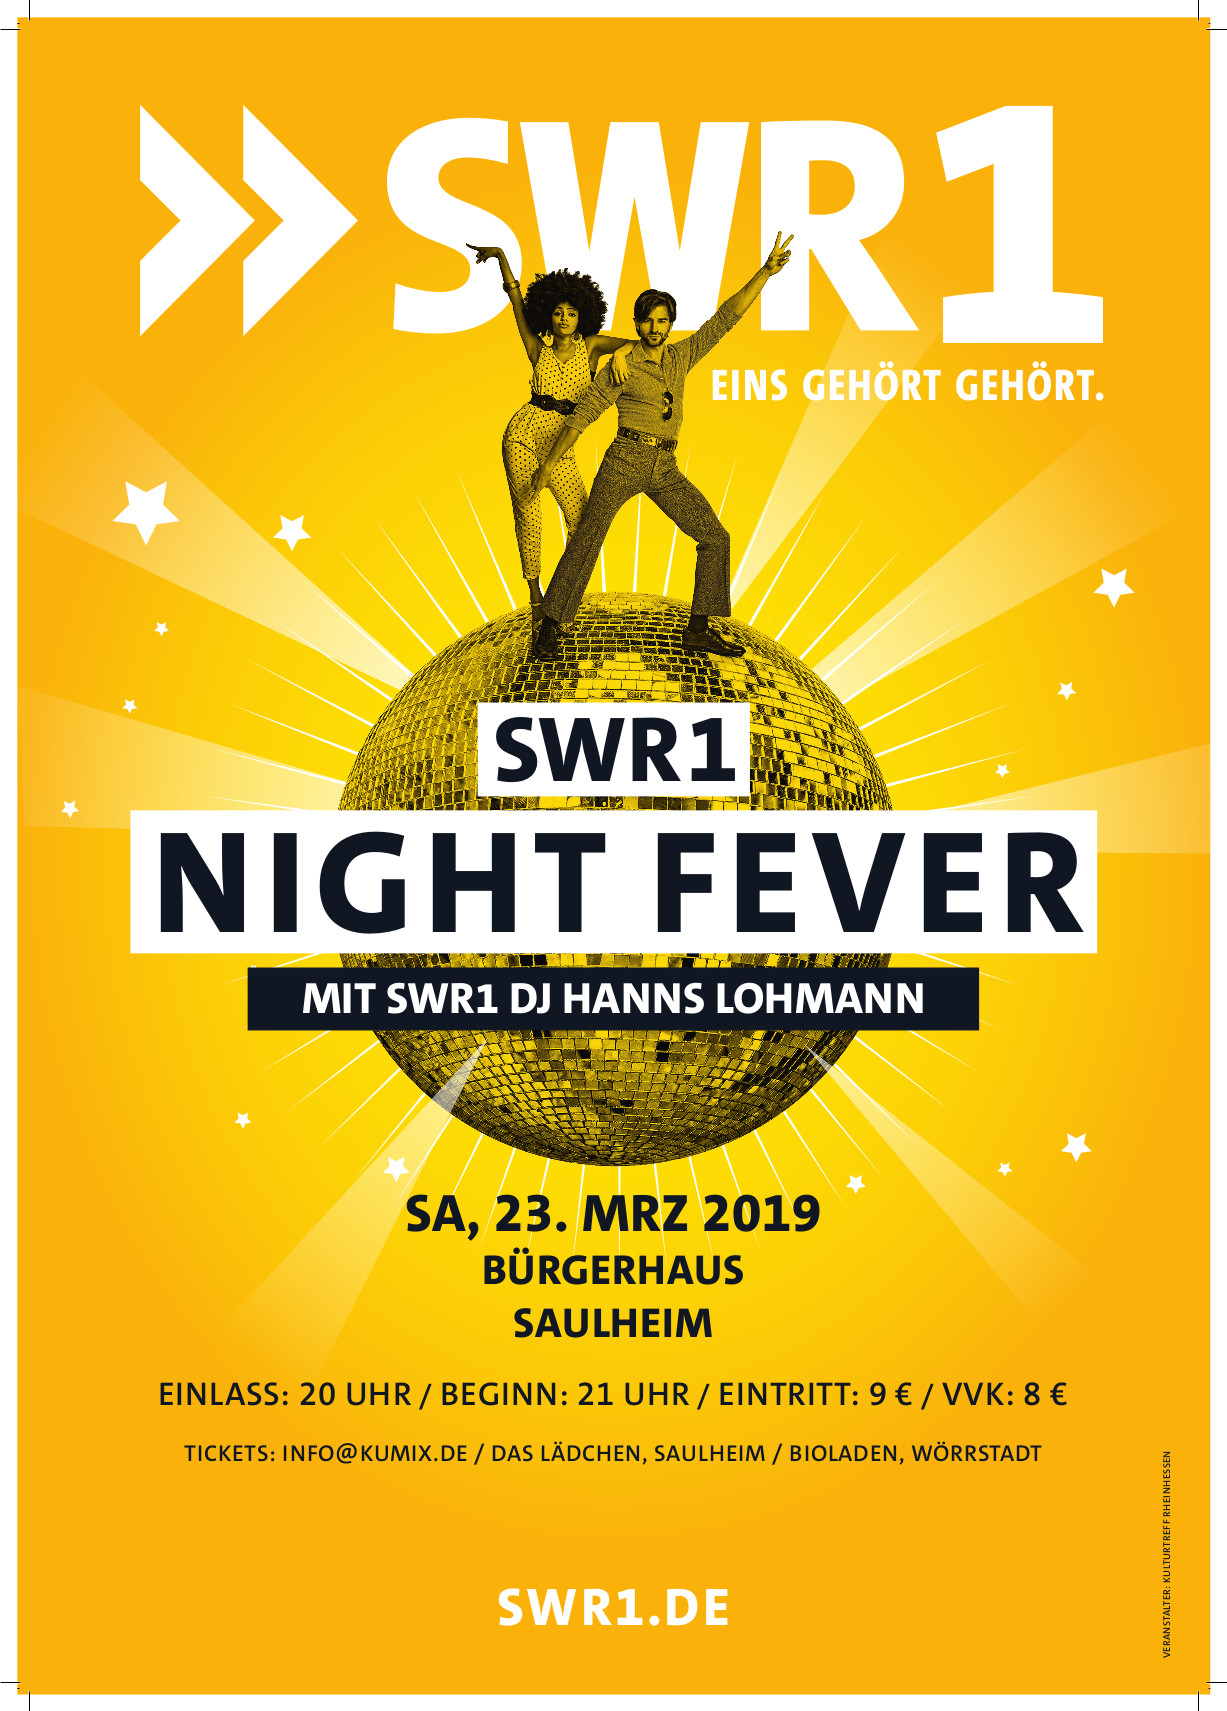 SWR1 Night Fever Party @ Bürgerhaus